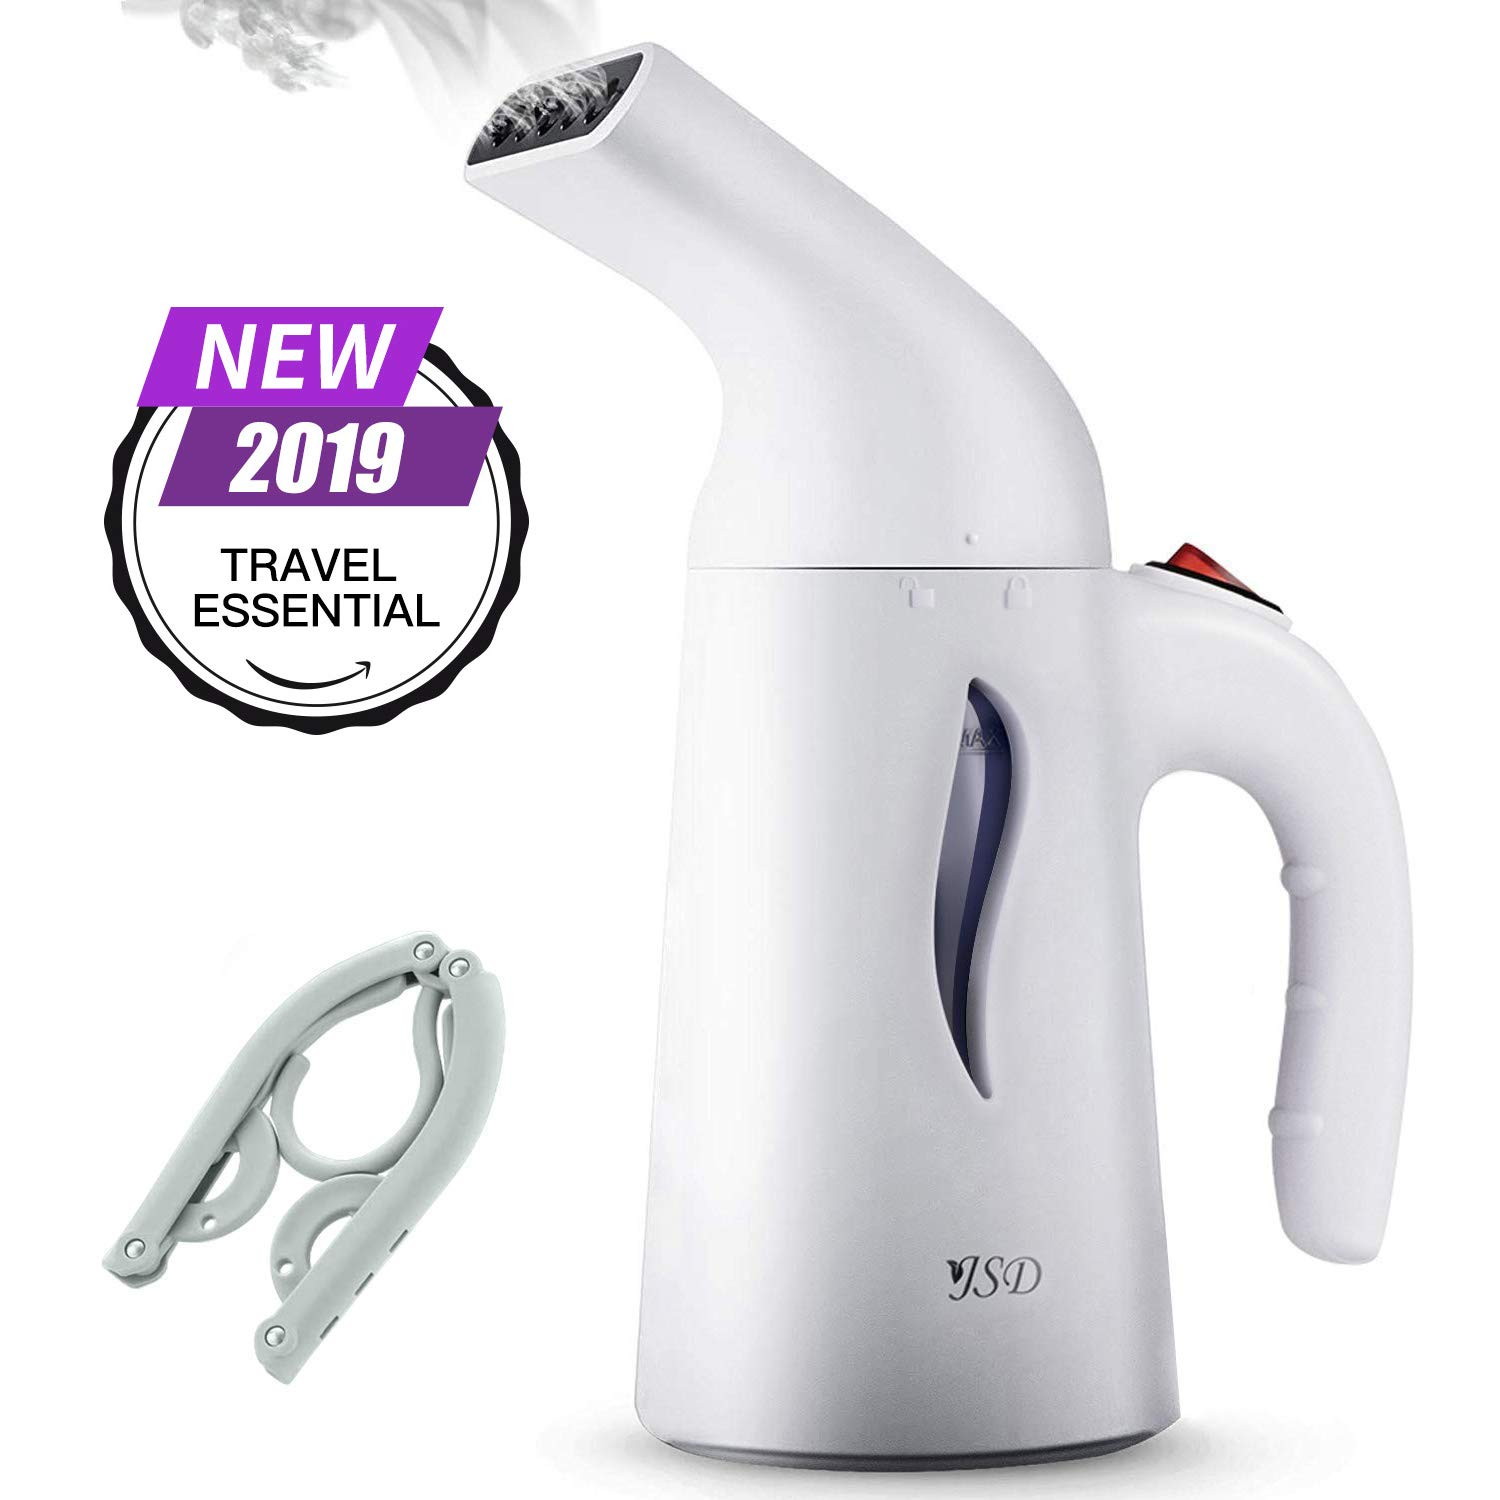 JSD Steamer for Clothes, 7 in 1 Travel Garment Steamers, 150ml Powerful Handheld Fabric Steamer with High Capacity for Home and Travel, Travel Pouch Included [Updated Version] by JSD